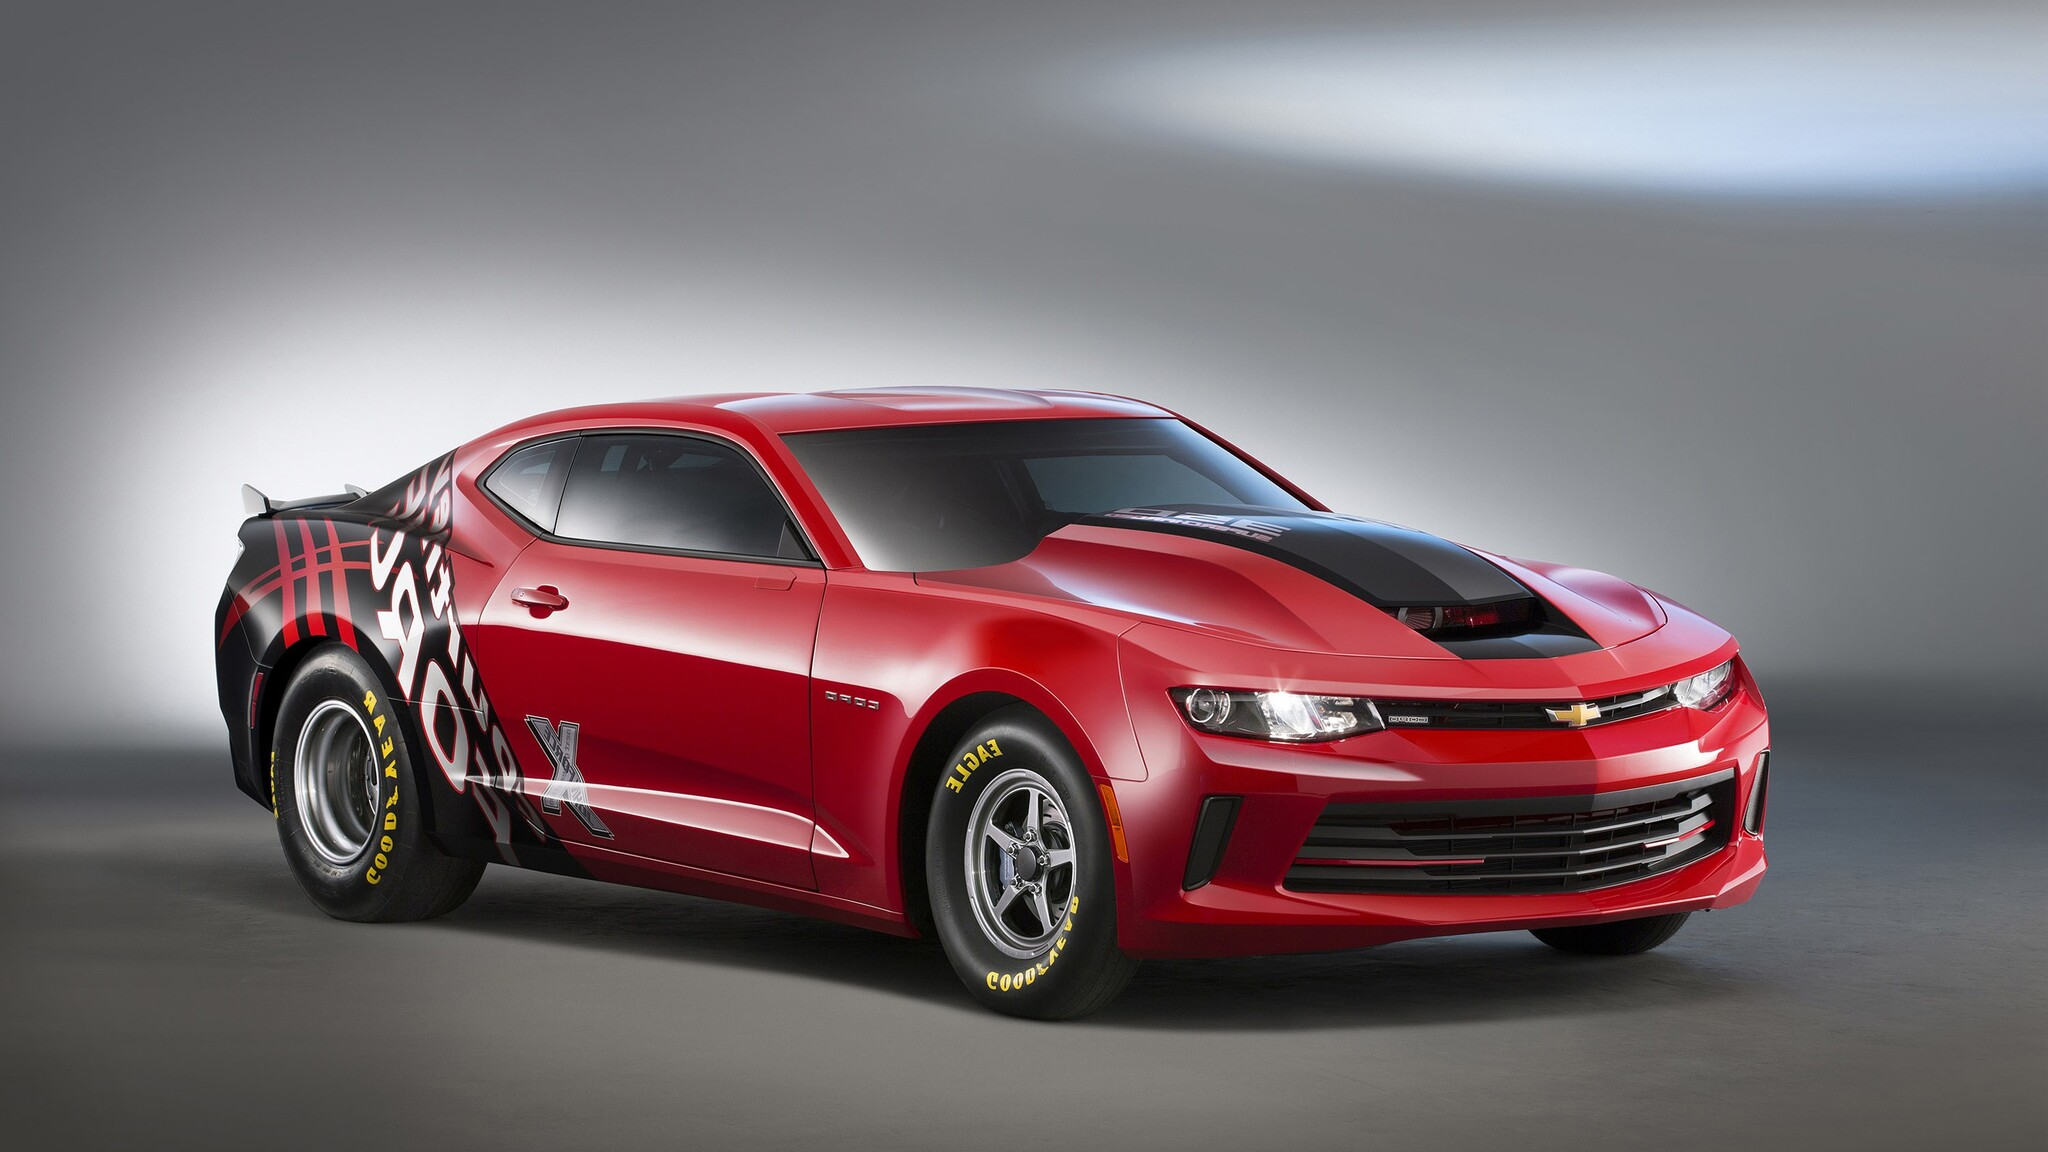 2048x1152 chevrolet copo camaro 2048x1152 resolution hd 4k